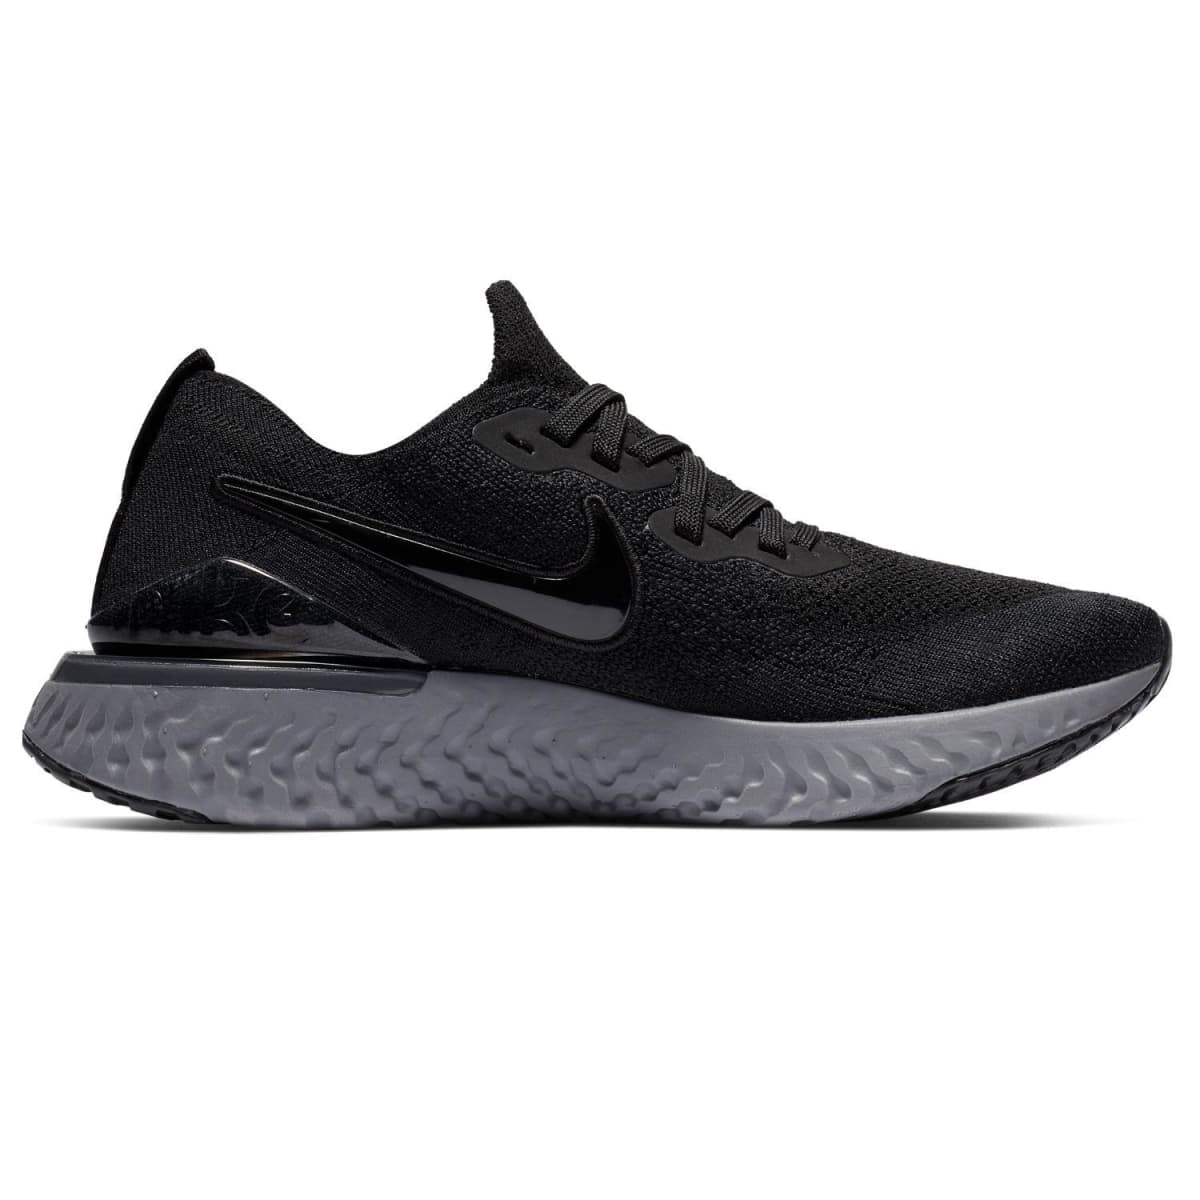 promo code 80870 ff091 Nike Women's Epic React Flyknit Running Shoes